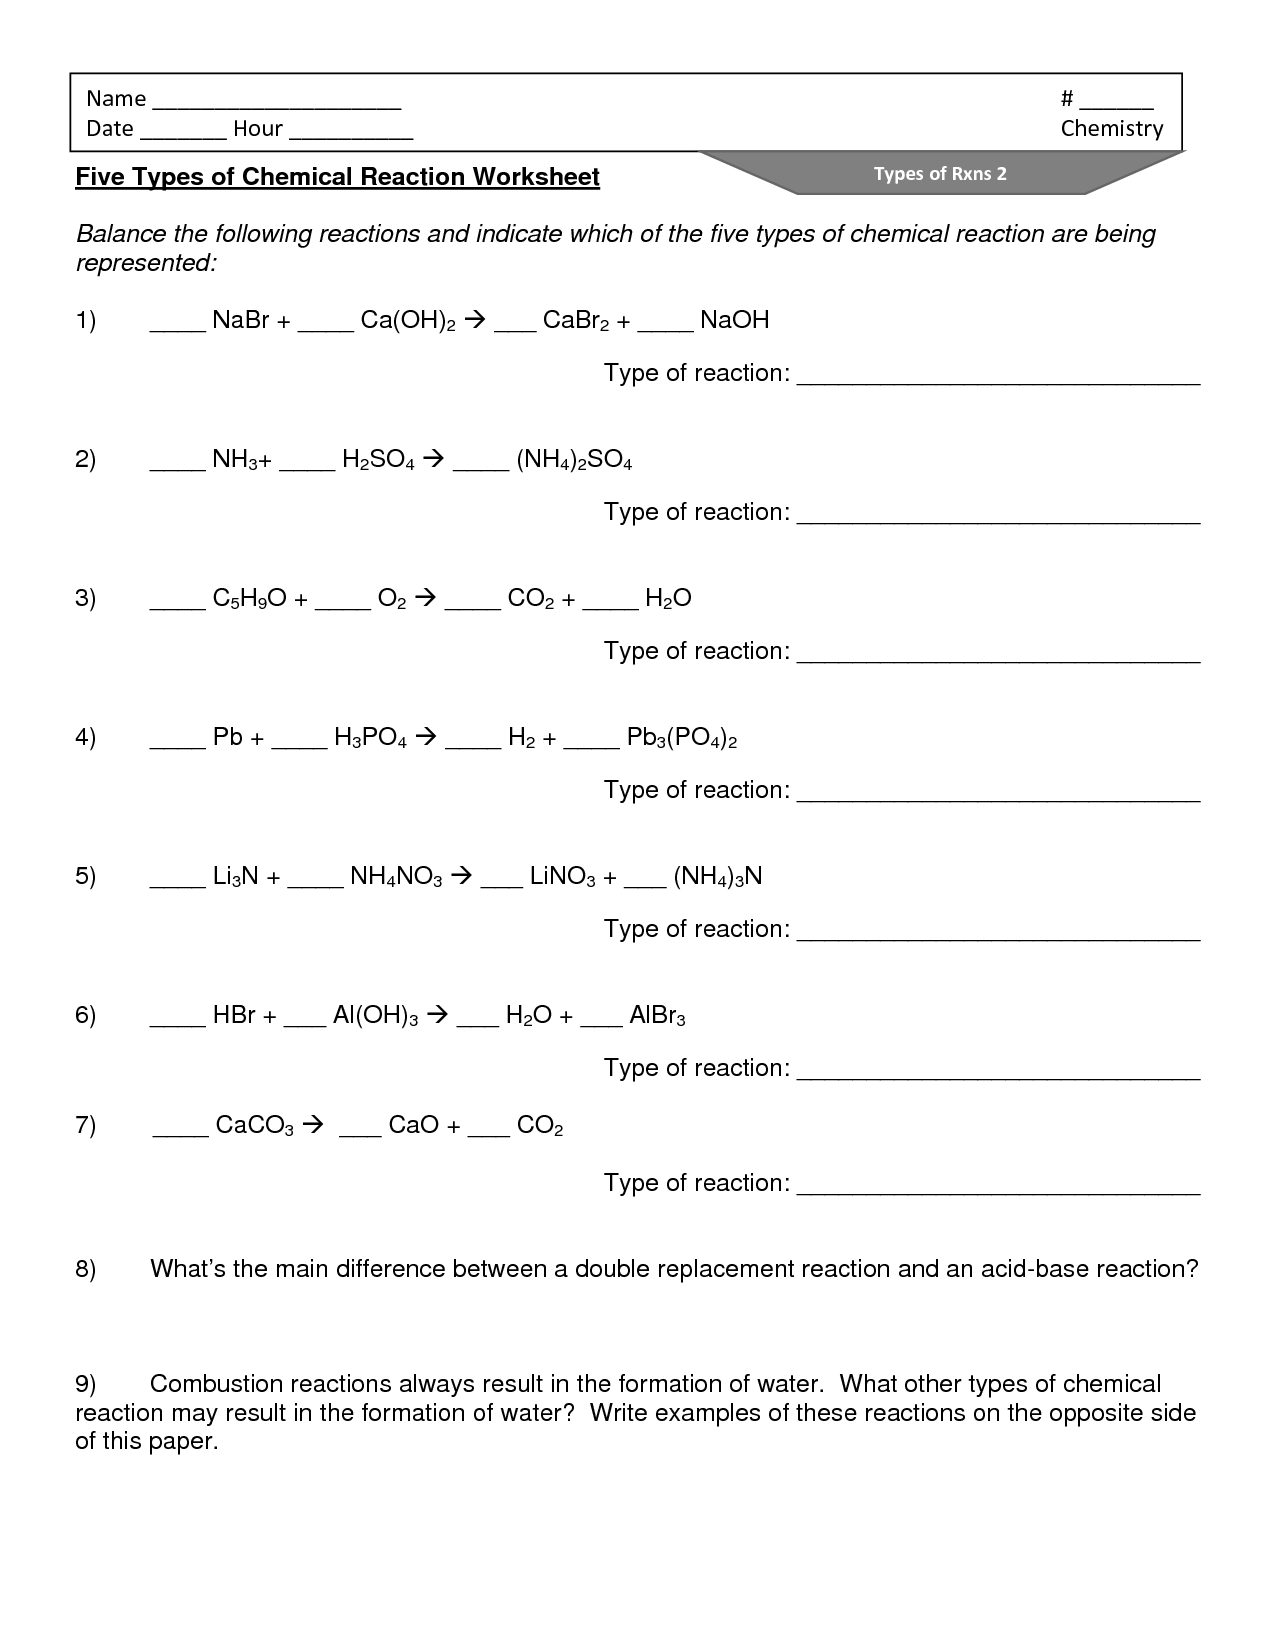 in addition Energy And Chemical Reactions Worksheet Answers Chemistry Equations further Chemistry Edition 21 Types Of Chemical Reactions Answers Worksheet further Six types of chemical reaction worksheet besides  together with 16 Best Images of Types Chemical Reactions Worksheets Answers further Types Of Chemical Reactions Worksheet   Teachers Pay Teachers besides de position reaction worksheet 1 answers – gdwebapp as well 60 Six Types Of Chemical Reaction Worksheet Key  Six Types Of furthermore Chemical Reaction Worksheets For Elementary Chemistry Lesson moreover  together with bustion reactions chem worksheet 10 5 – kaylo co also Types Of Chemical Reactions Worksheet Answer Key The best worksheets additionally Chemical Reactions Types Worksheet   Obamaletter furthermore Types of Chemical Reaction Worksheet answers   Six Types of Chemical together with Types Of Chemical Reactions Worksheet Answers   Reaction Equations. on types of chemical reaction worksheet